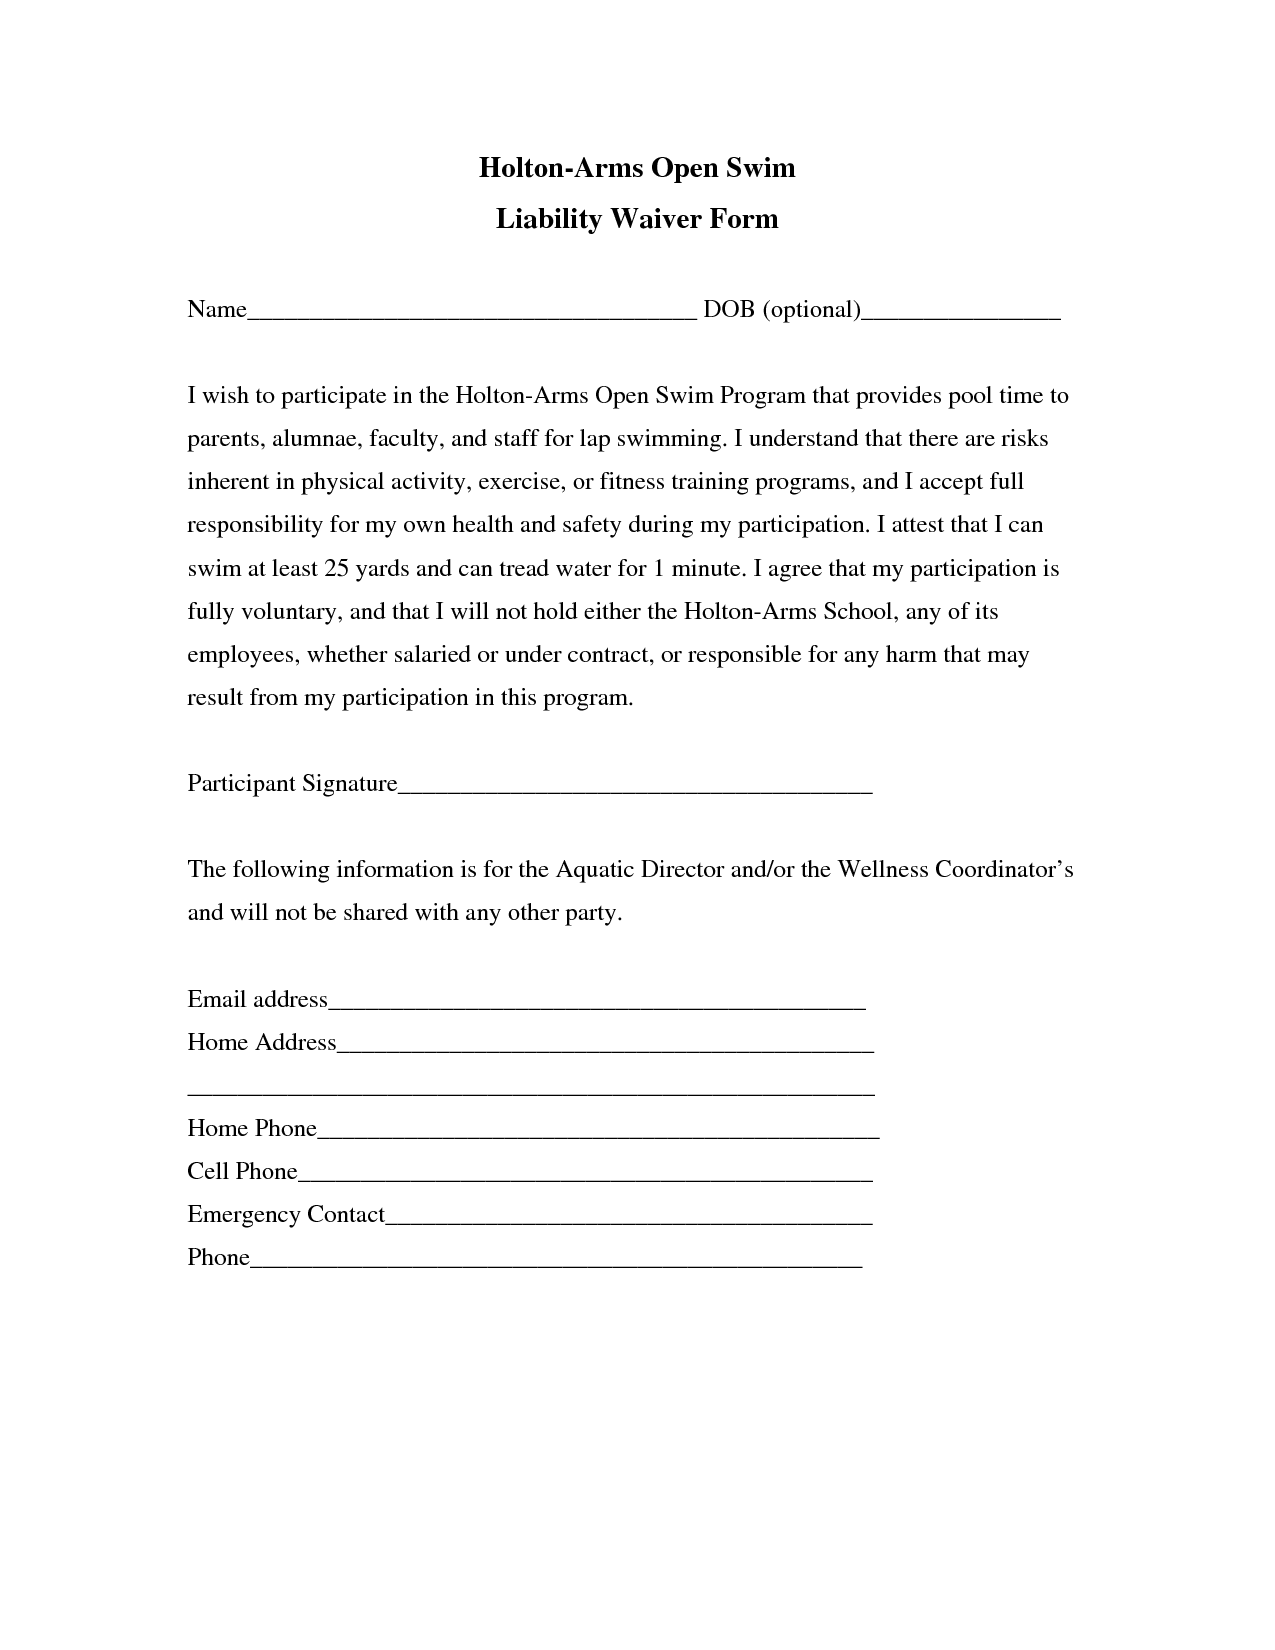 Liability Insurance: Liability Insurance Waiver Template - liability ...